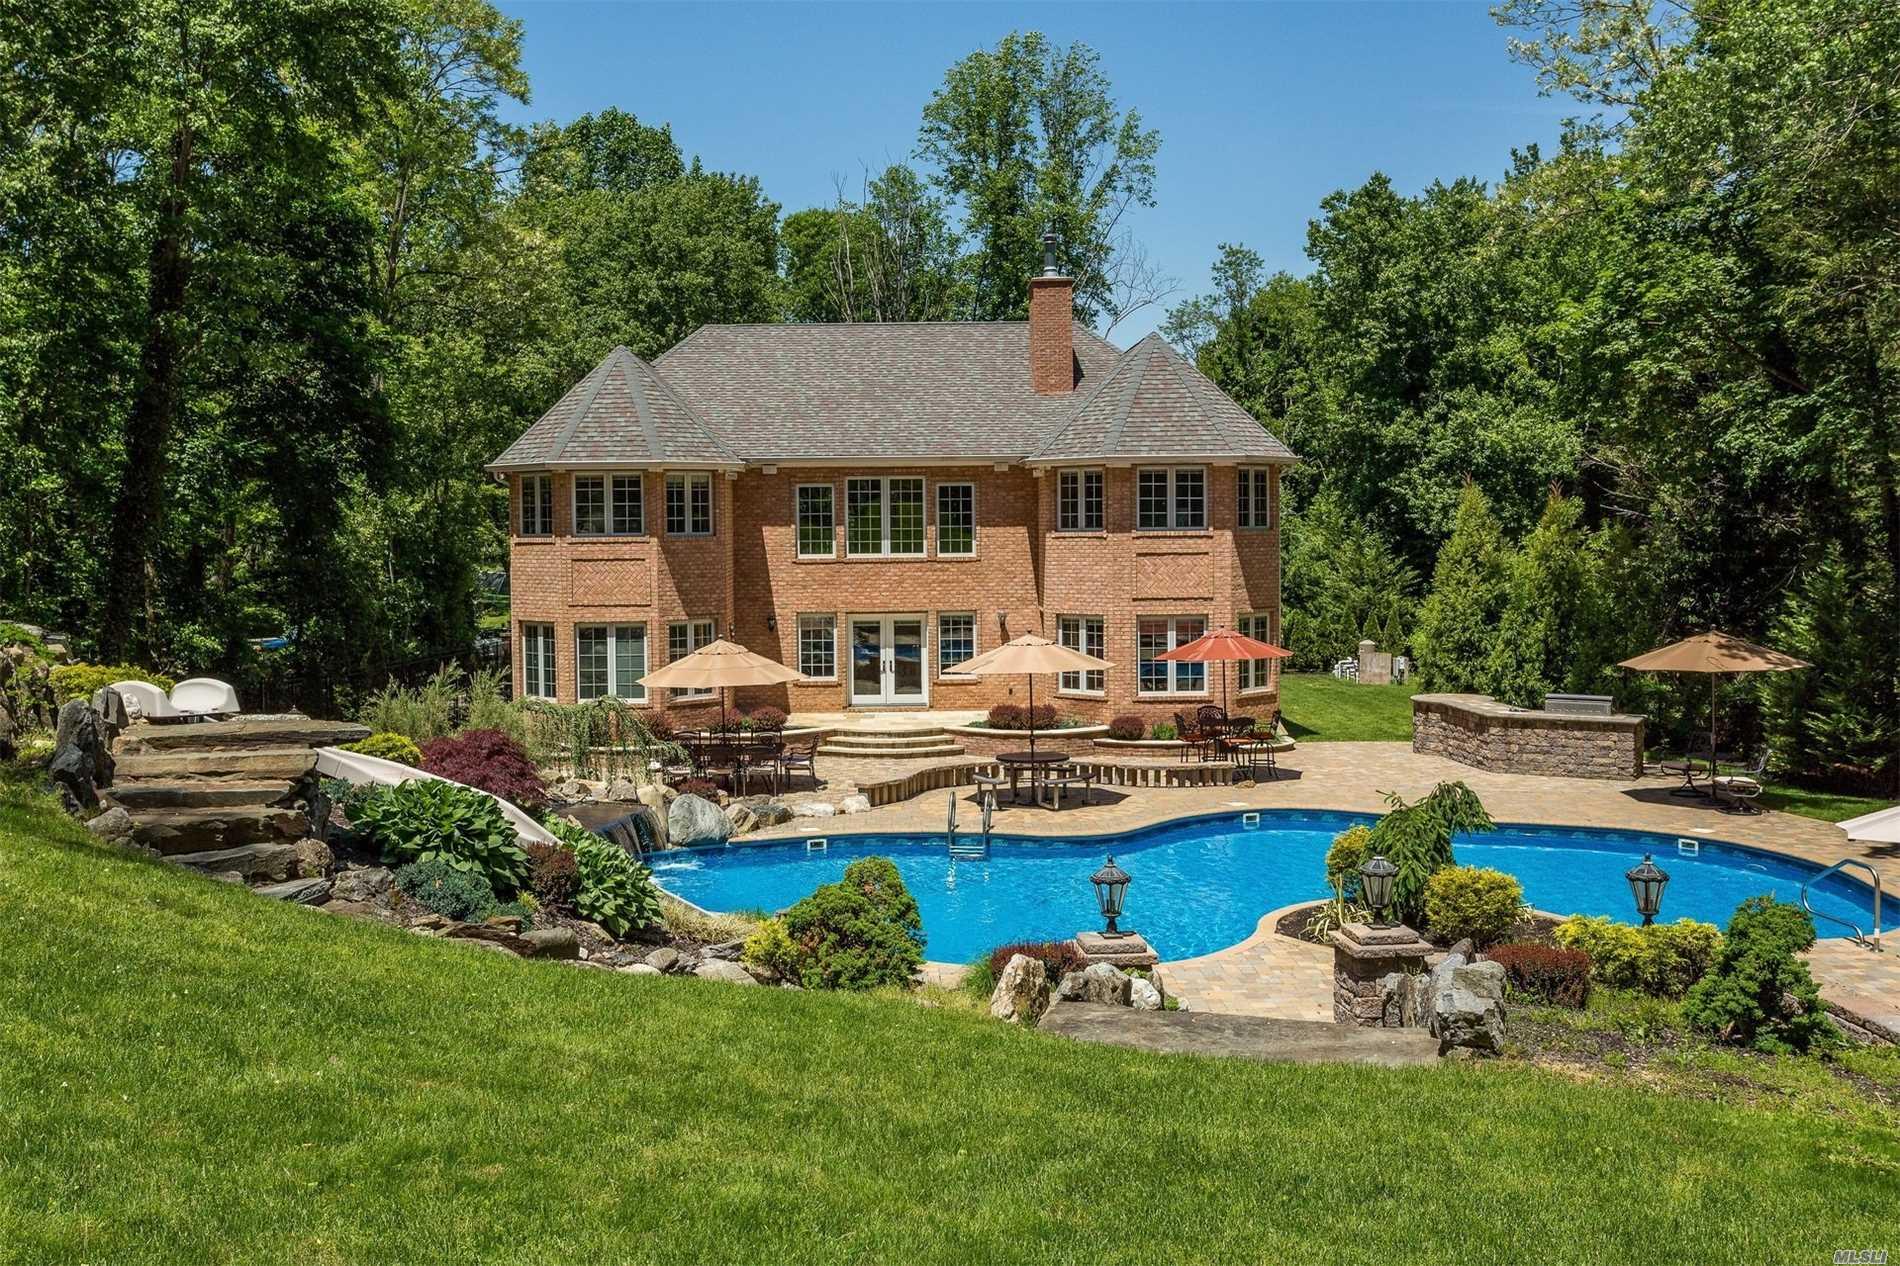 Photo of home for sale at 24 Kendrick Ln, Dix Hills NY